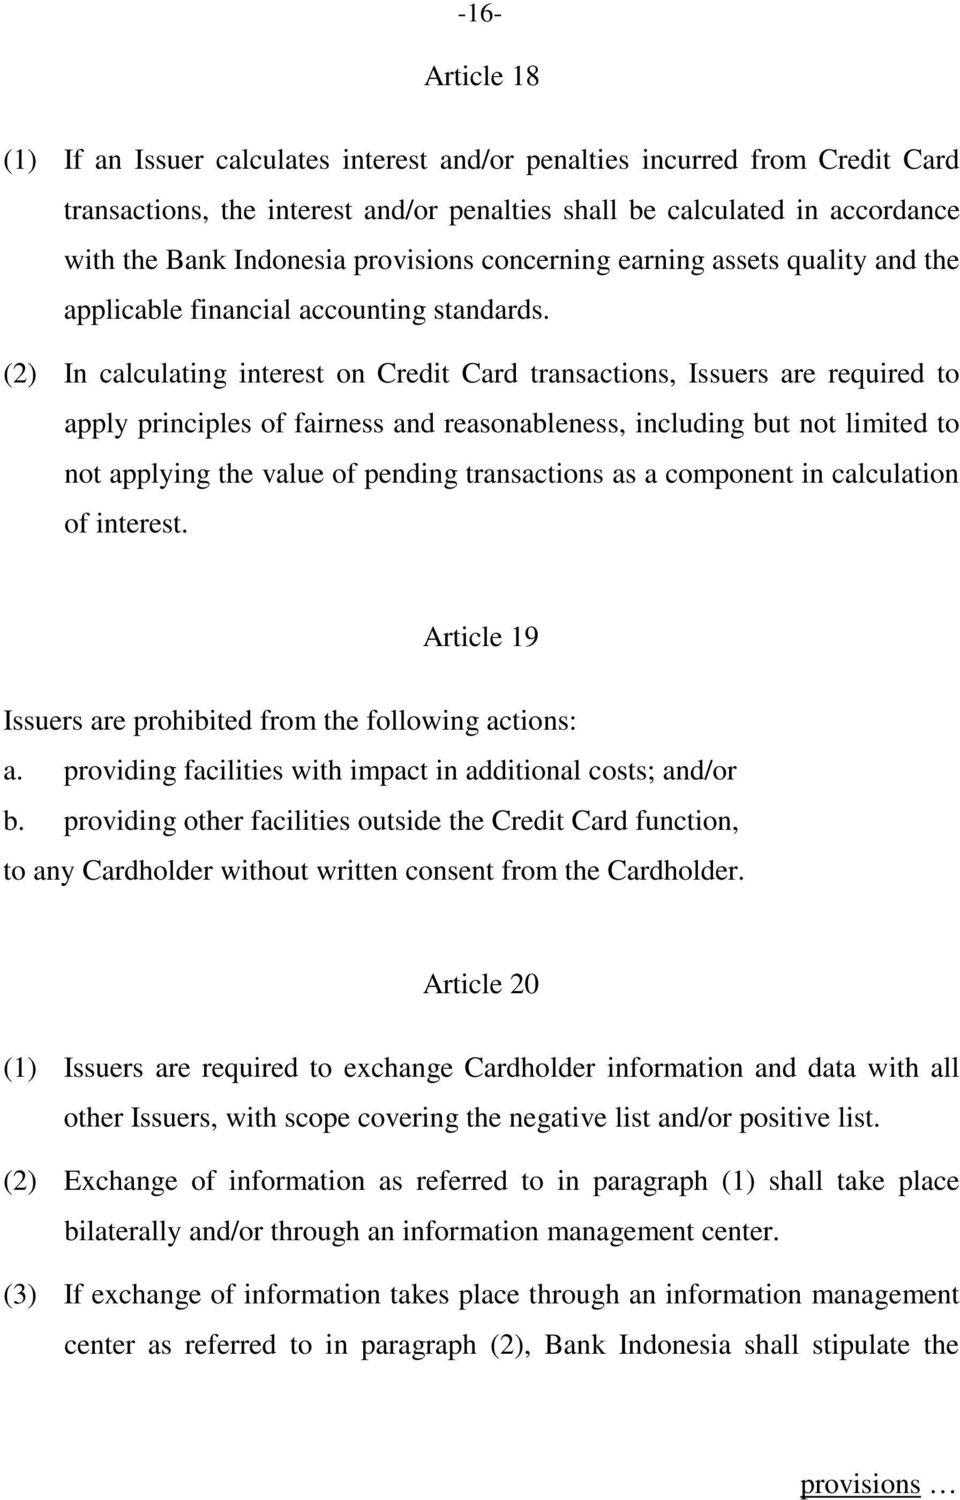 (2) In calculating interest on Credit Card transactions, Issuers are required to apply principles of fairness and reasonableness, including but not limited to not applying the value of pending